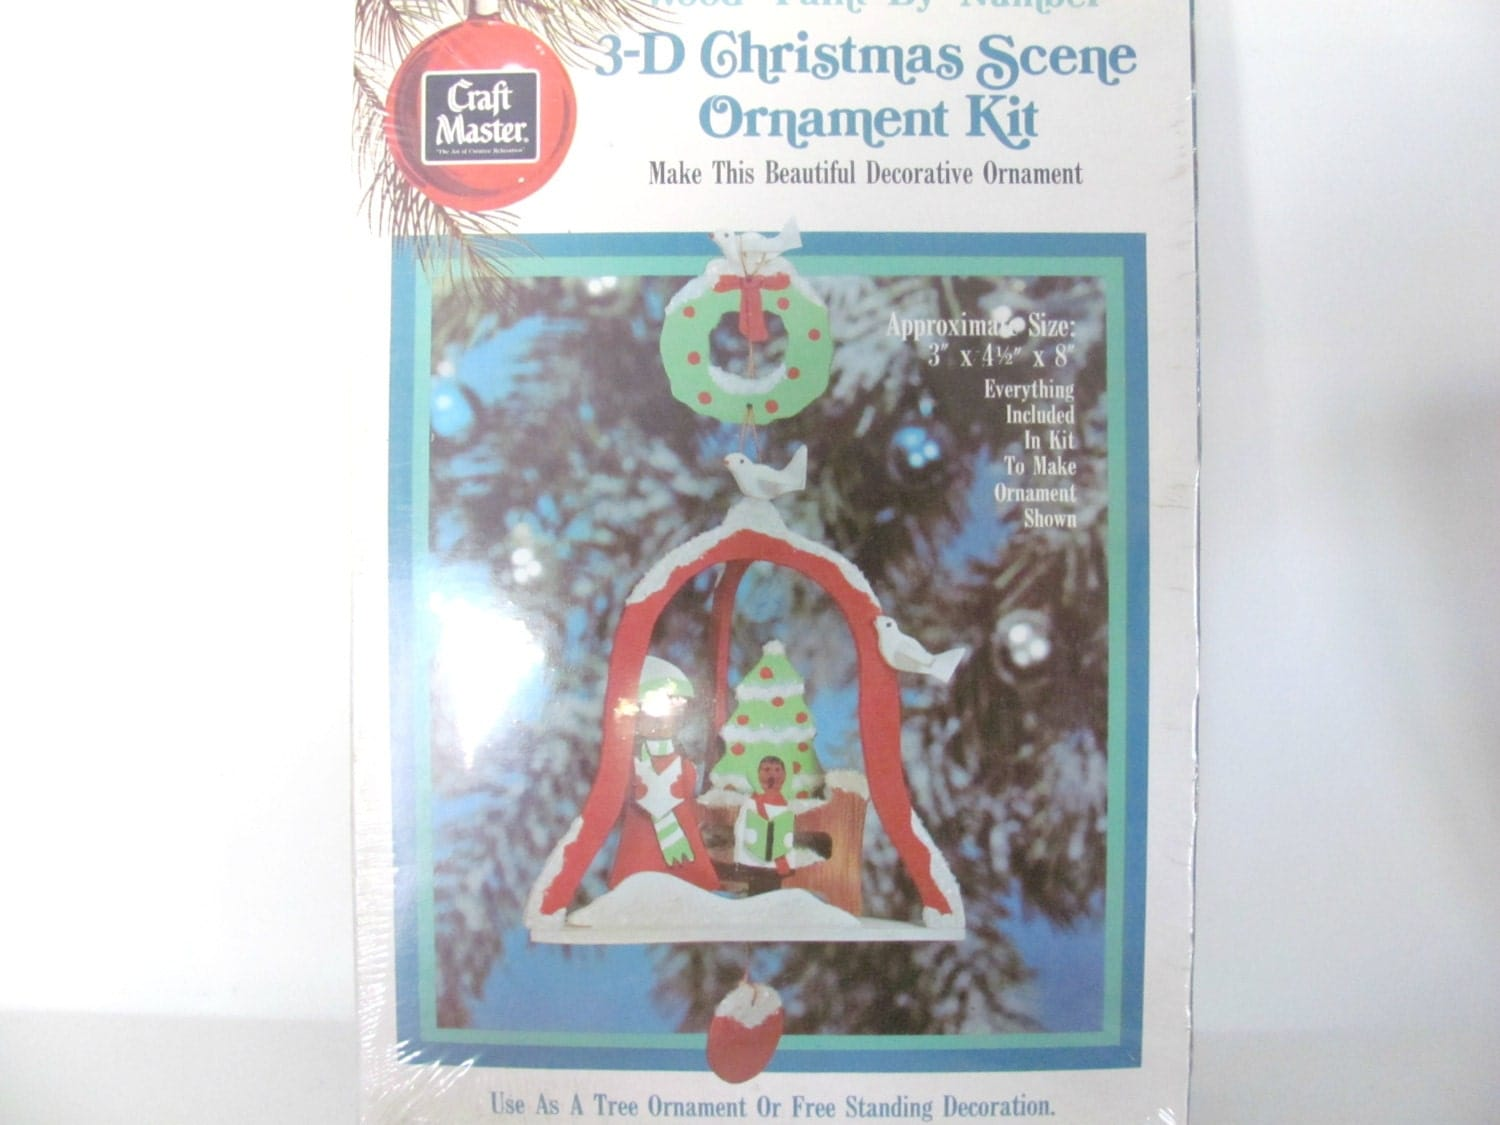 Craft master paint by number kits - Vintage Christmas Crafts 1970 S Craft Master Paint By Number Wood Ornament Kit Christmas Caroler Ornament Christmas Decor